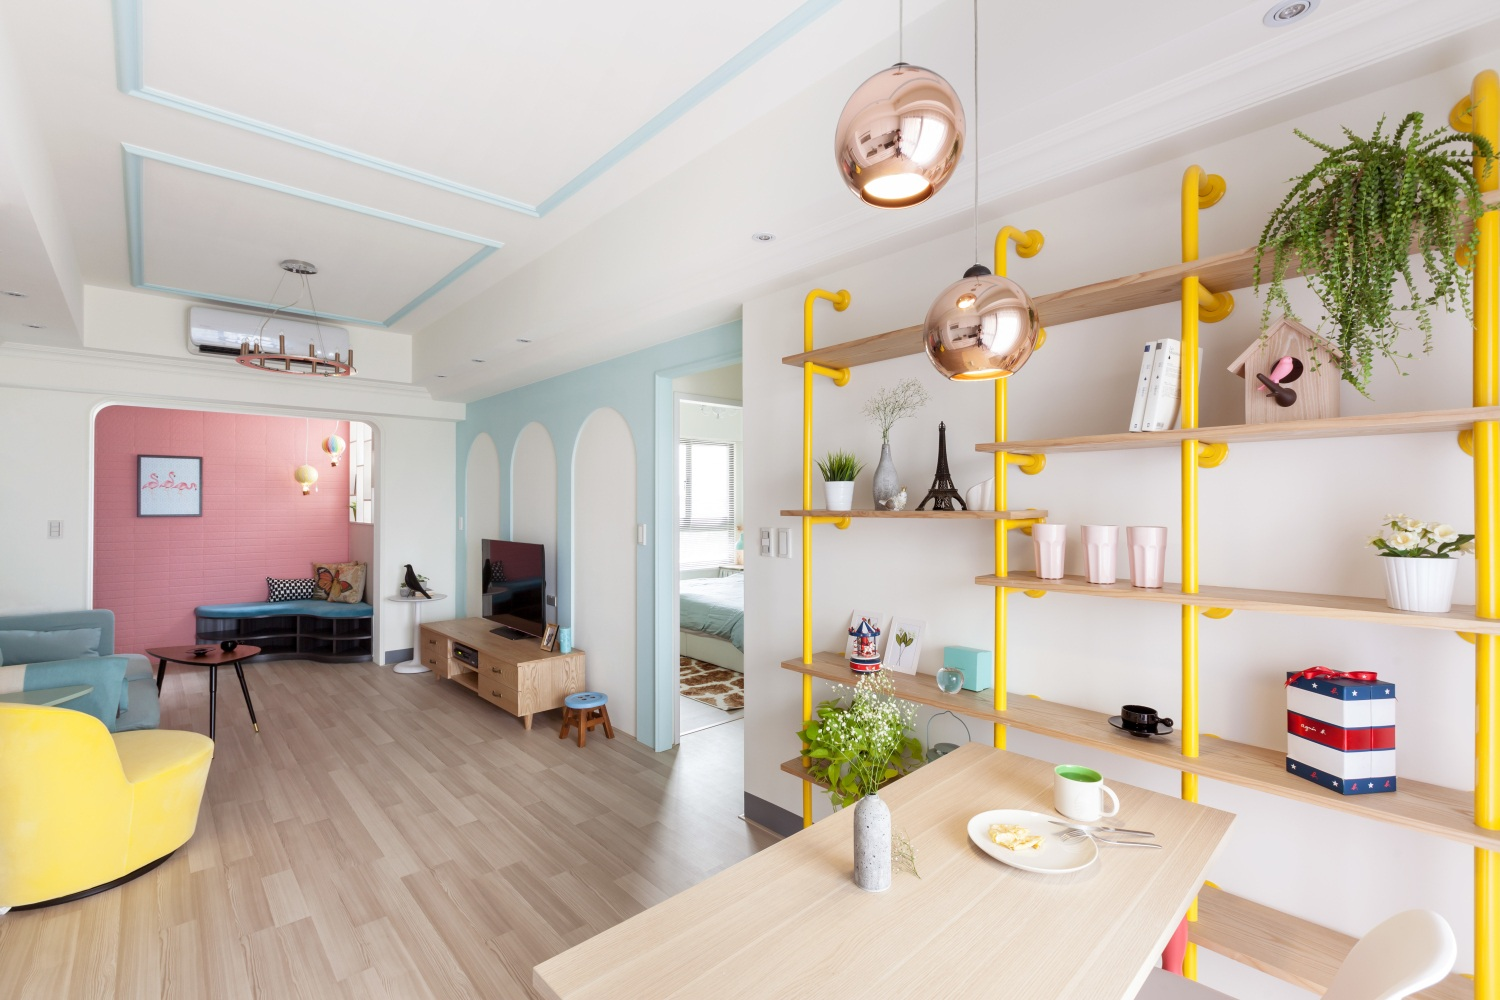 3 ideas for a 2 bedroom home includes floor plans Apartments using pastel to create dreamy interiors